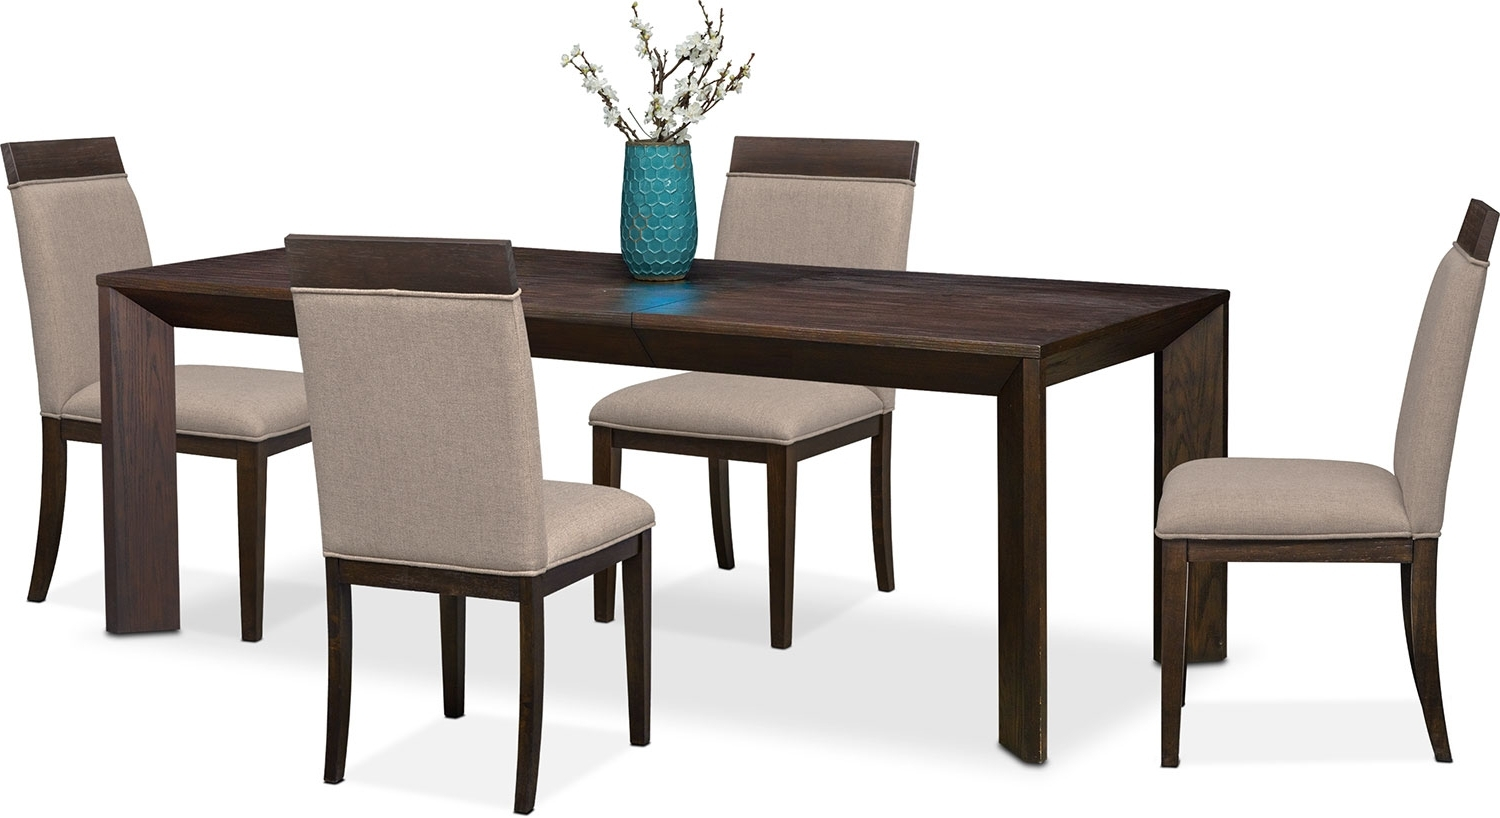 Most Recent Gavin Table And 4 Side Chairs – Brownstone (View 5 of 25)